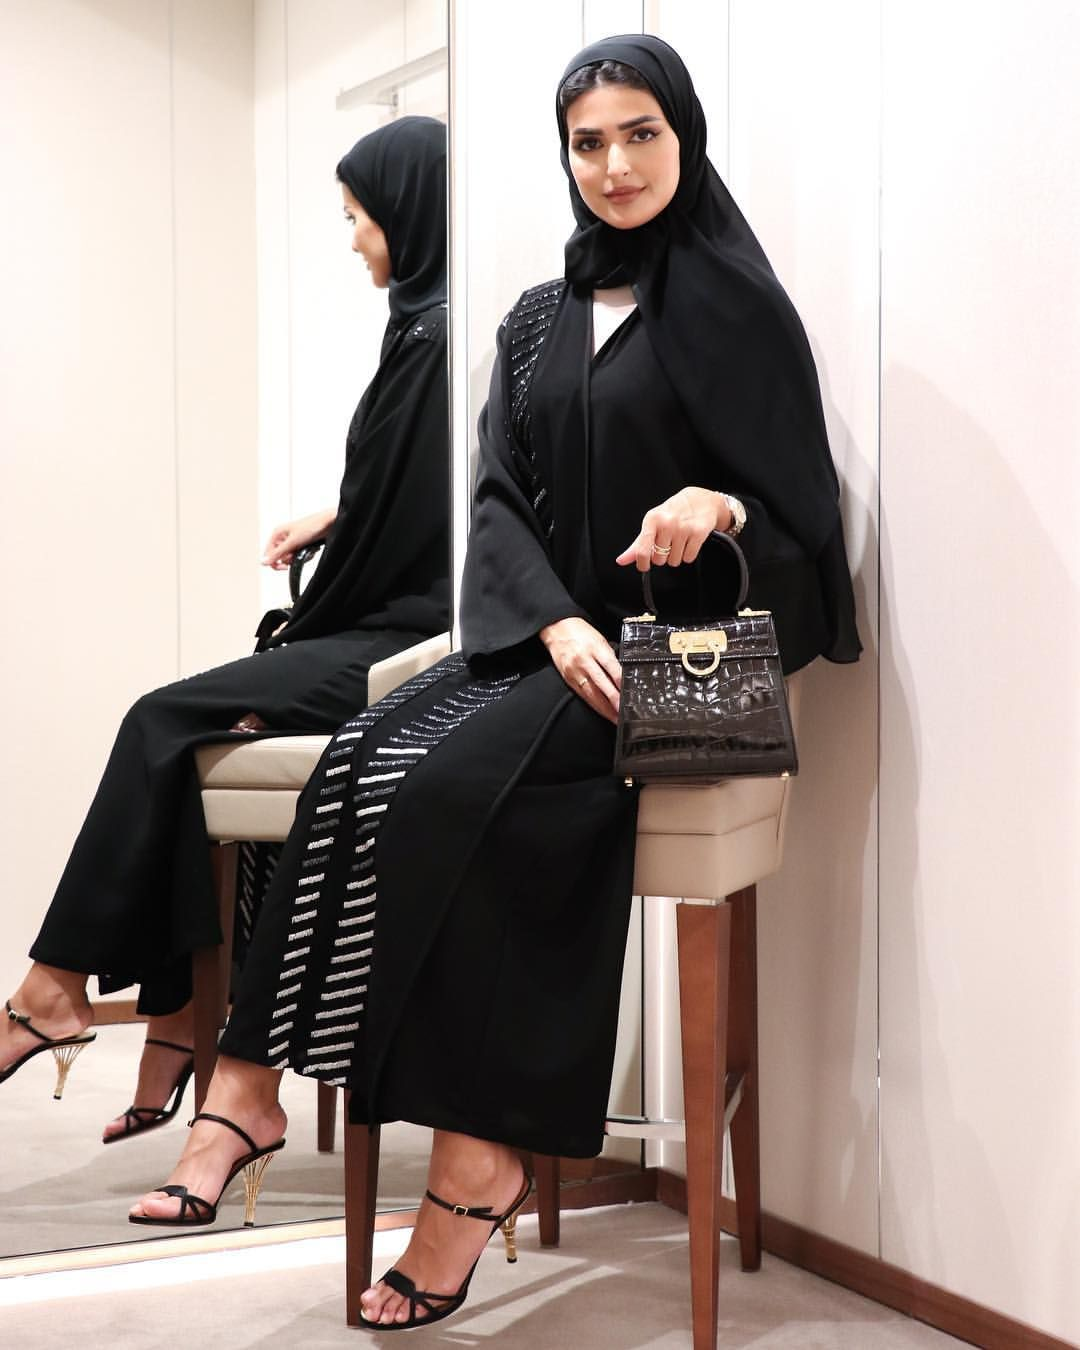 Snap Haneen Qtr Girls Only On Instagram Creations Collection By Ferragamo حالي ا في مجمع فيلاجيو كولكشن حصري من س Abayas Fashion Fashion Abaya Fashion